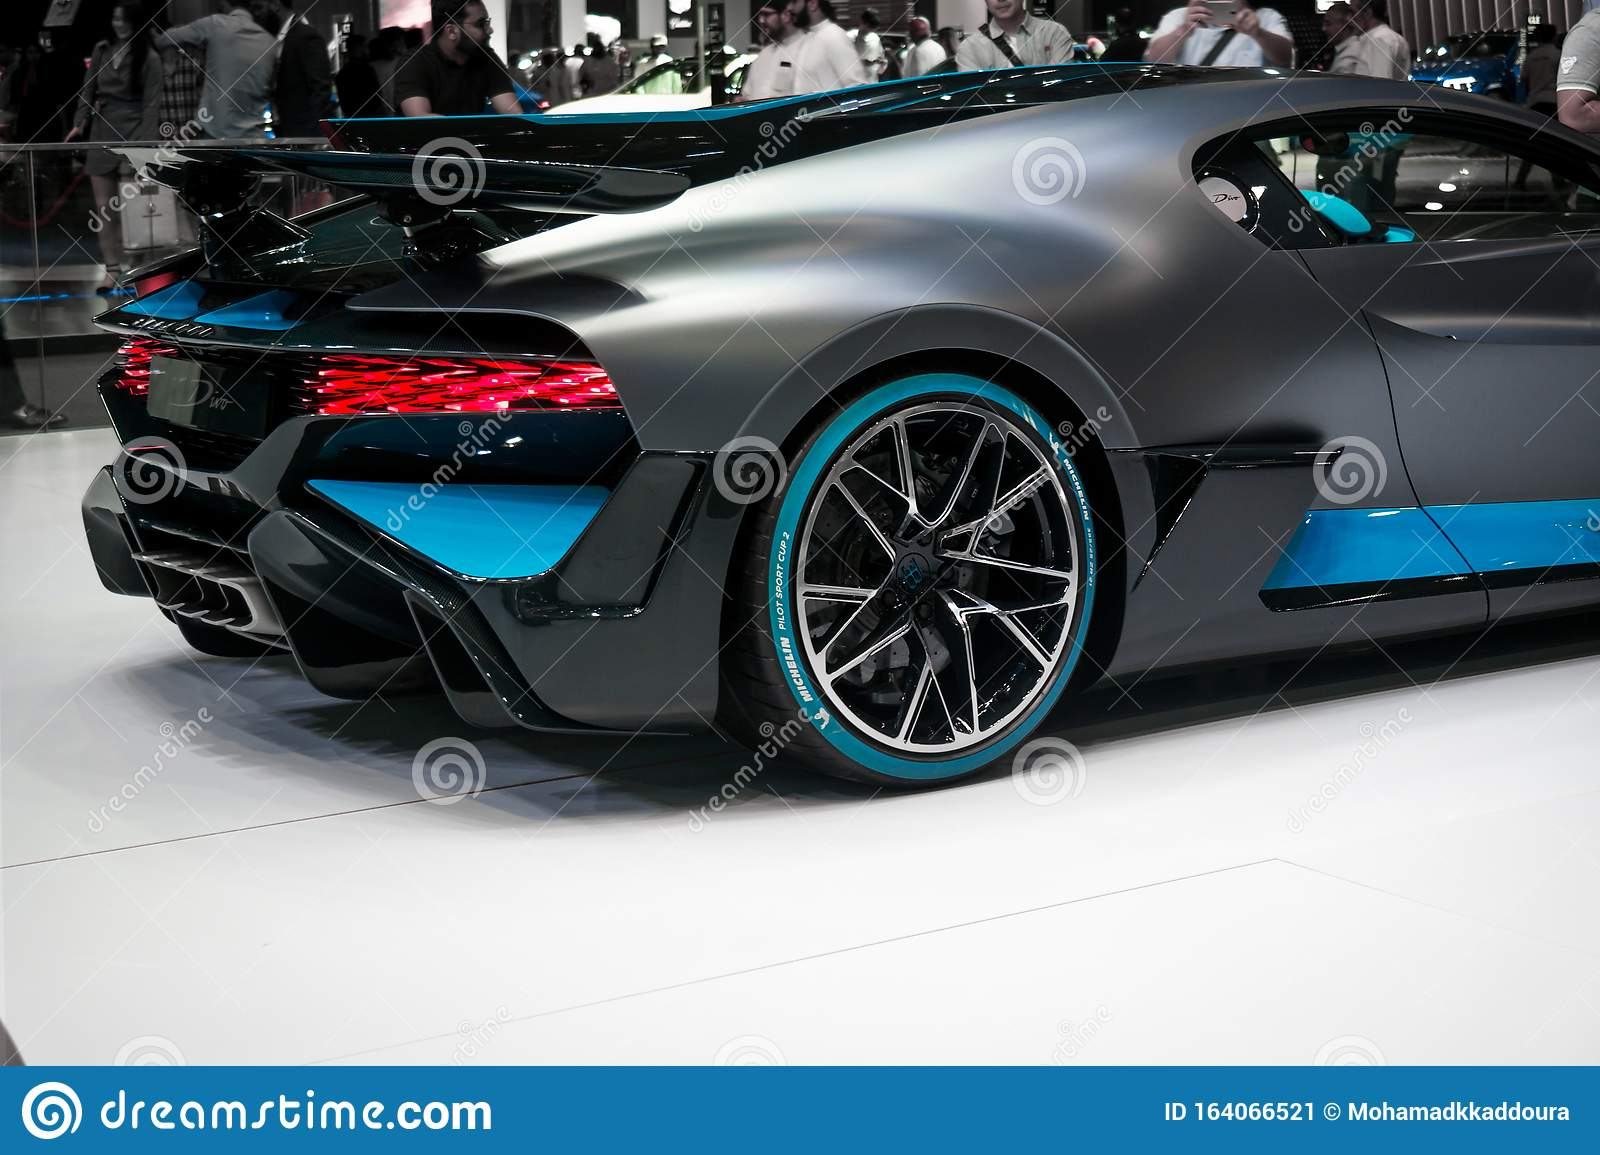 The Brand New 2020 Bugatti Divo In Metallic Black And Blue Displayed In A Car Show In Dubai Editorial Photo Image Of Future Exposition 164066521